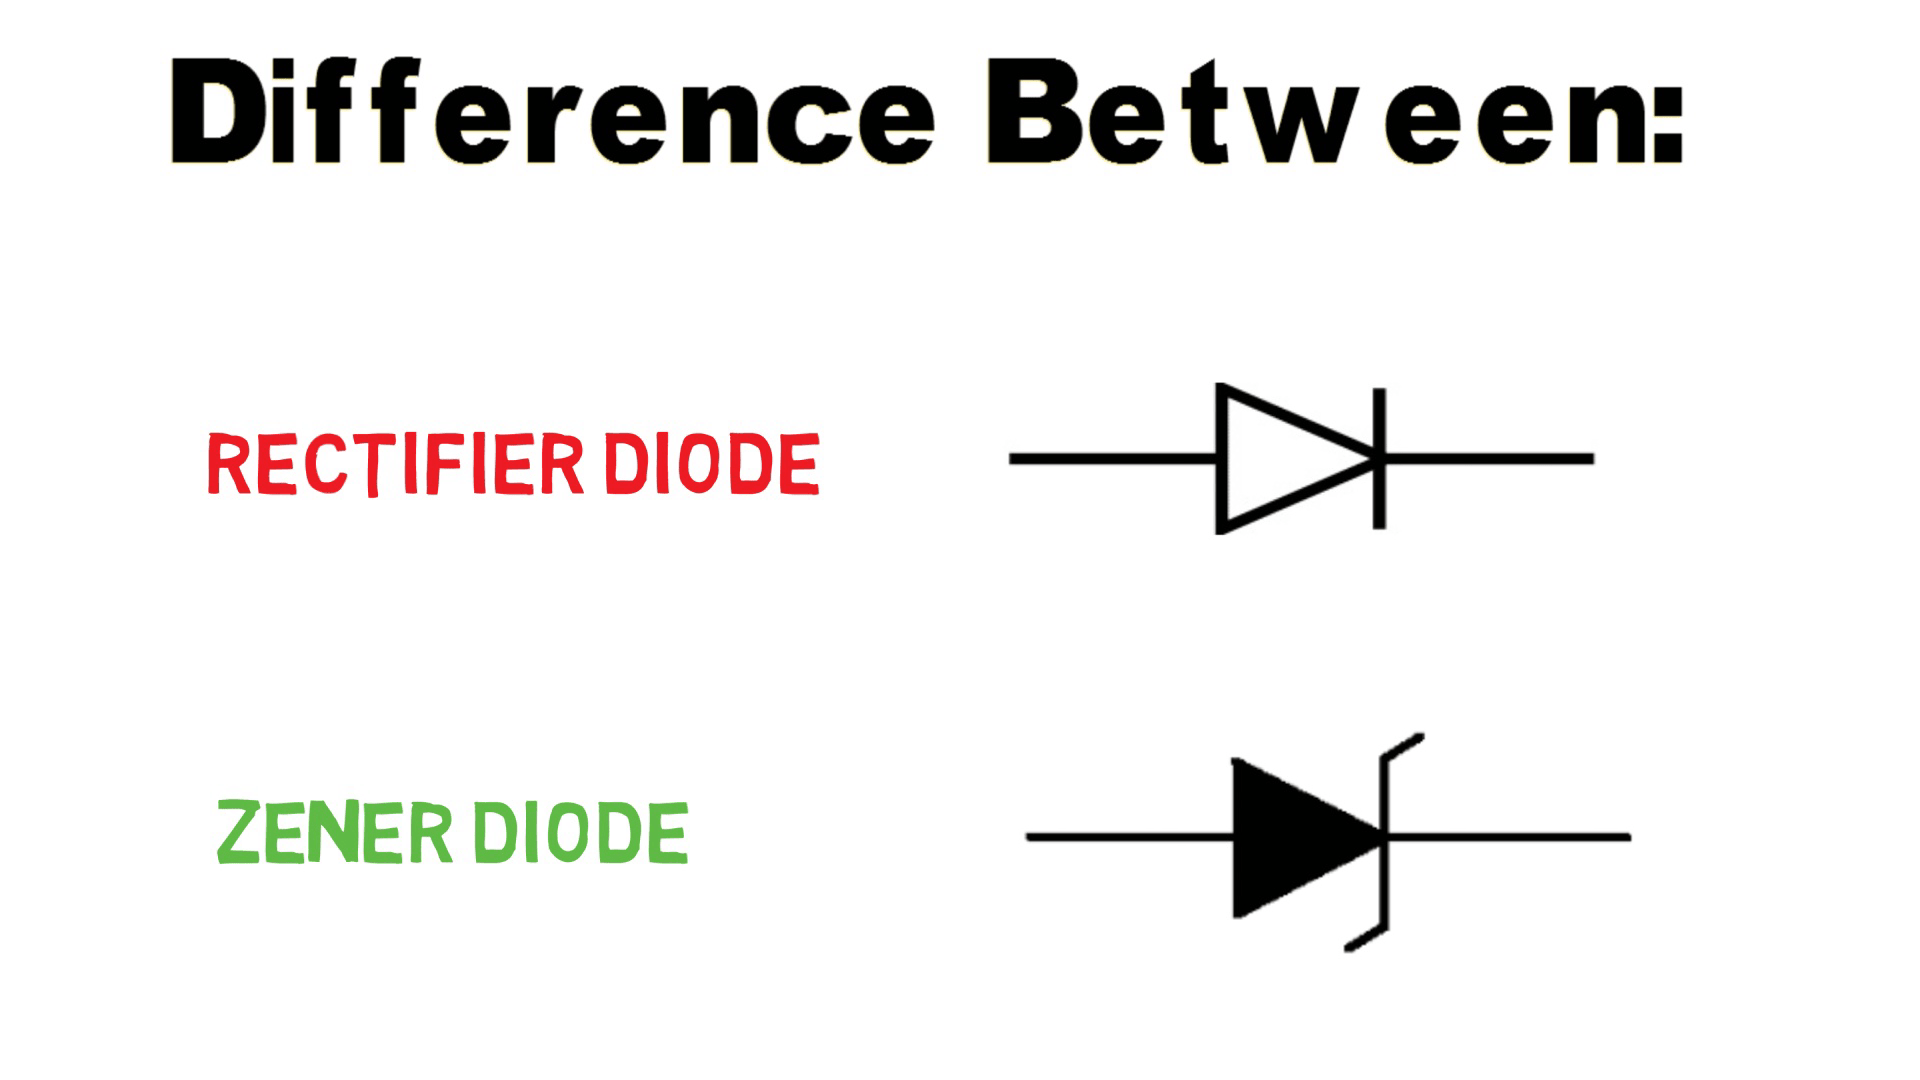 Difference Between Zener Diode And Normal Rectifier Diode